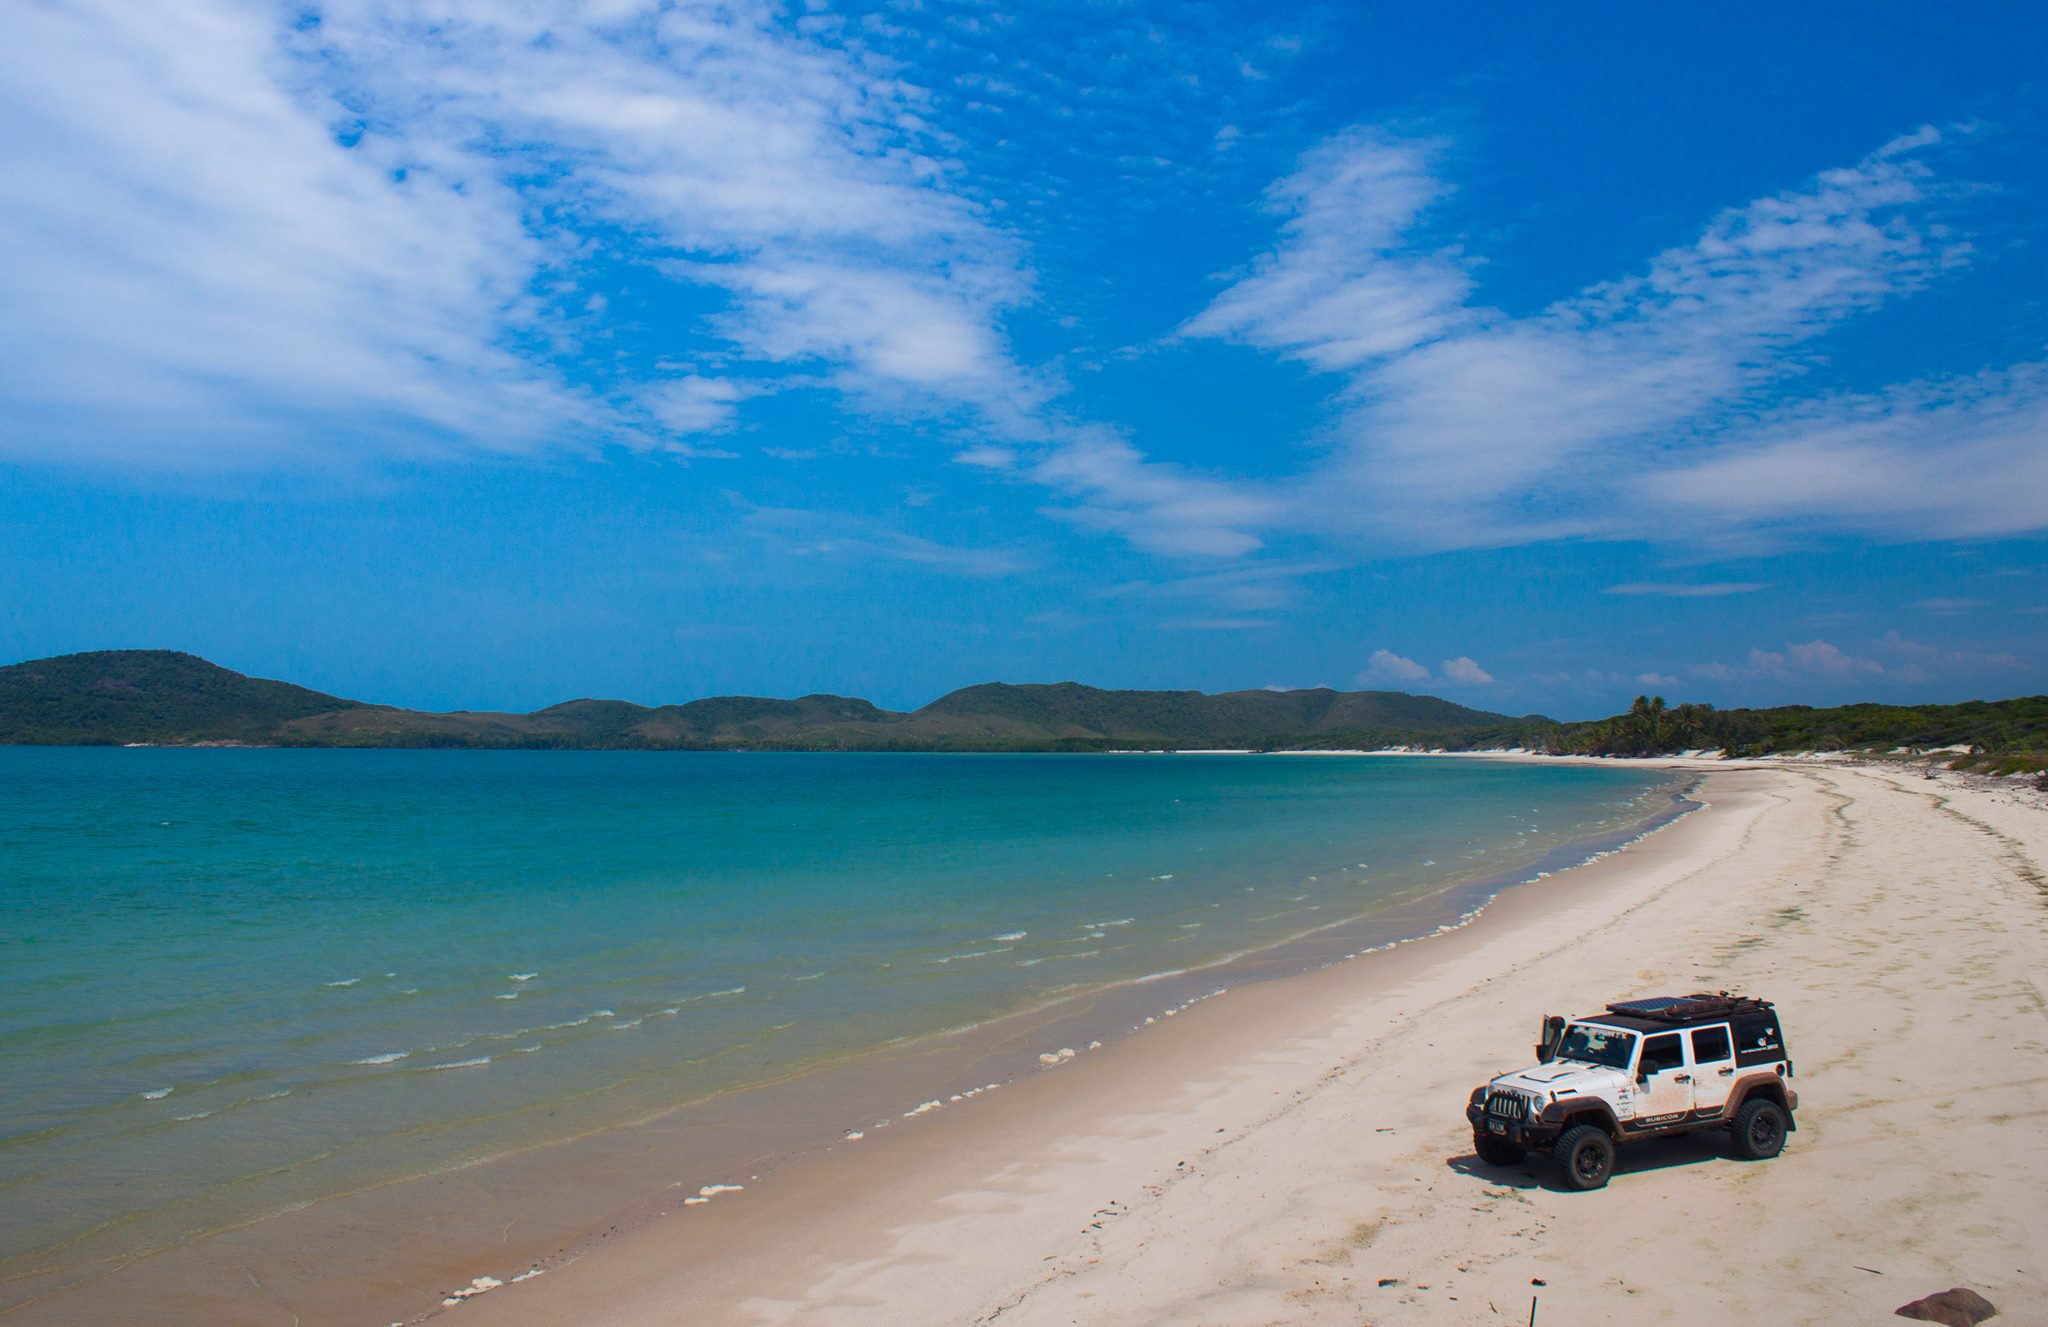 Clear skys and clear water and beach driving